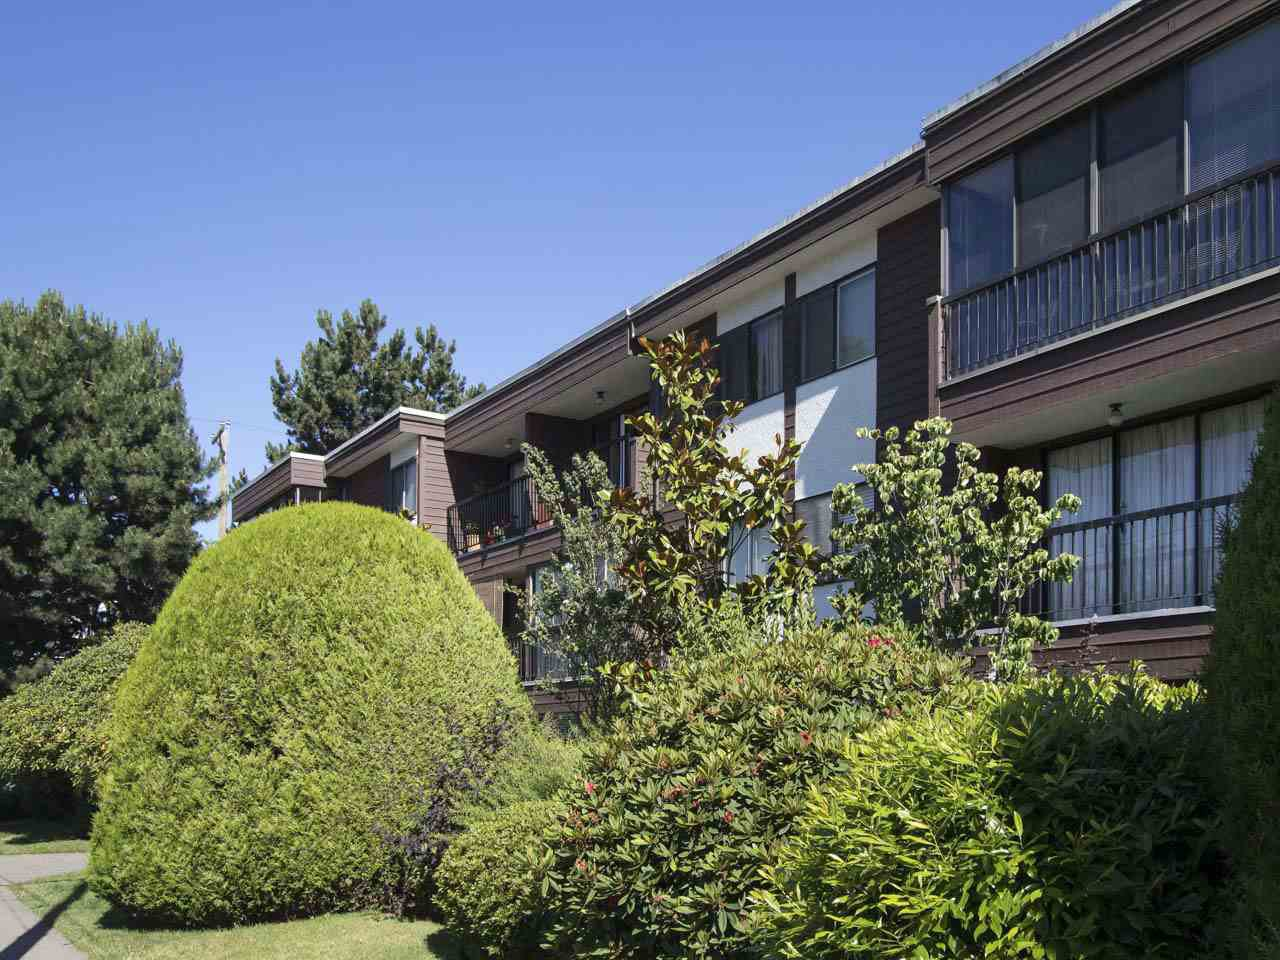 """Main Photo: 113 3787 W 4TH Avenue in Vancouver: Point Grey Condo for sale in """"Andrea Apartments"""" (Vancouver West)  : MLS®# R2085313"""